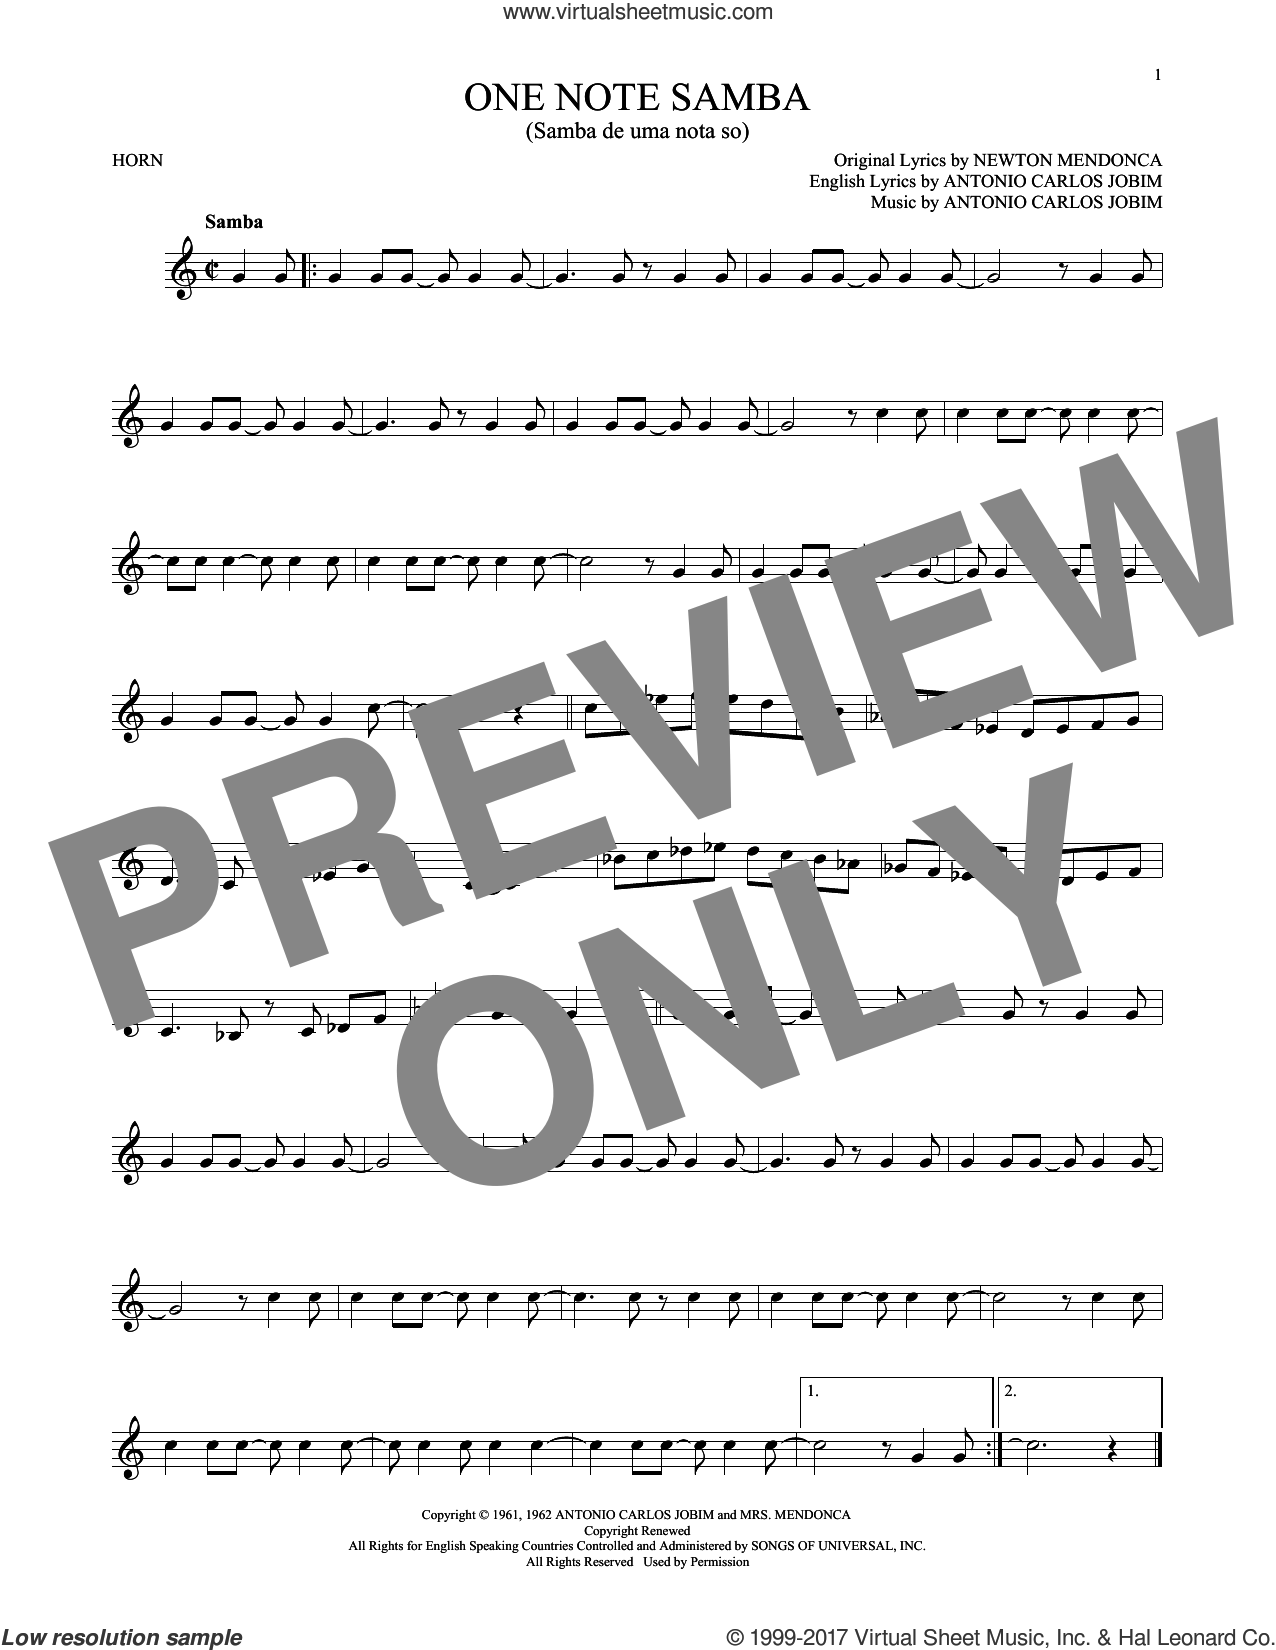 One Note Samba (Samba De Uma Nota So) sheet music for horn solo by Antonio Carlos Jobim. Score Image Preview.